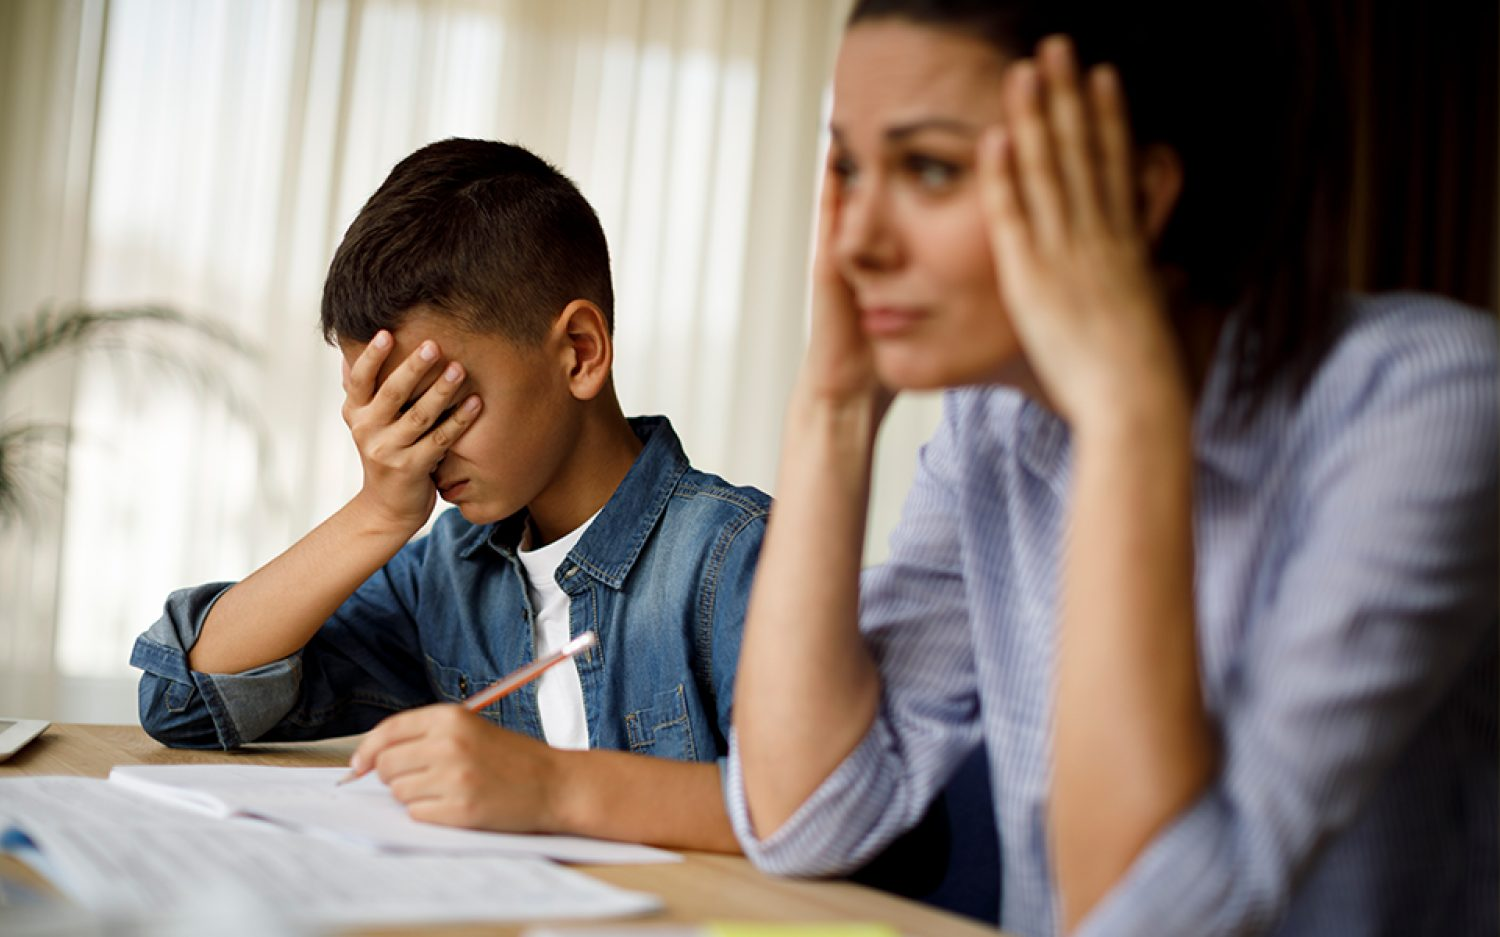 How to handle setbacks and hard days while homeschooling